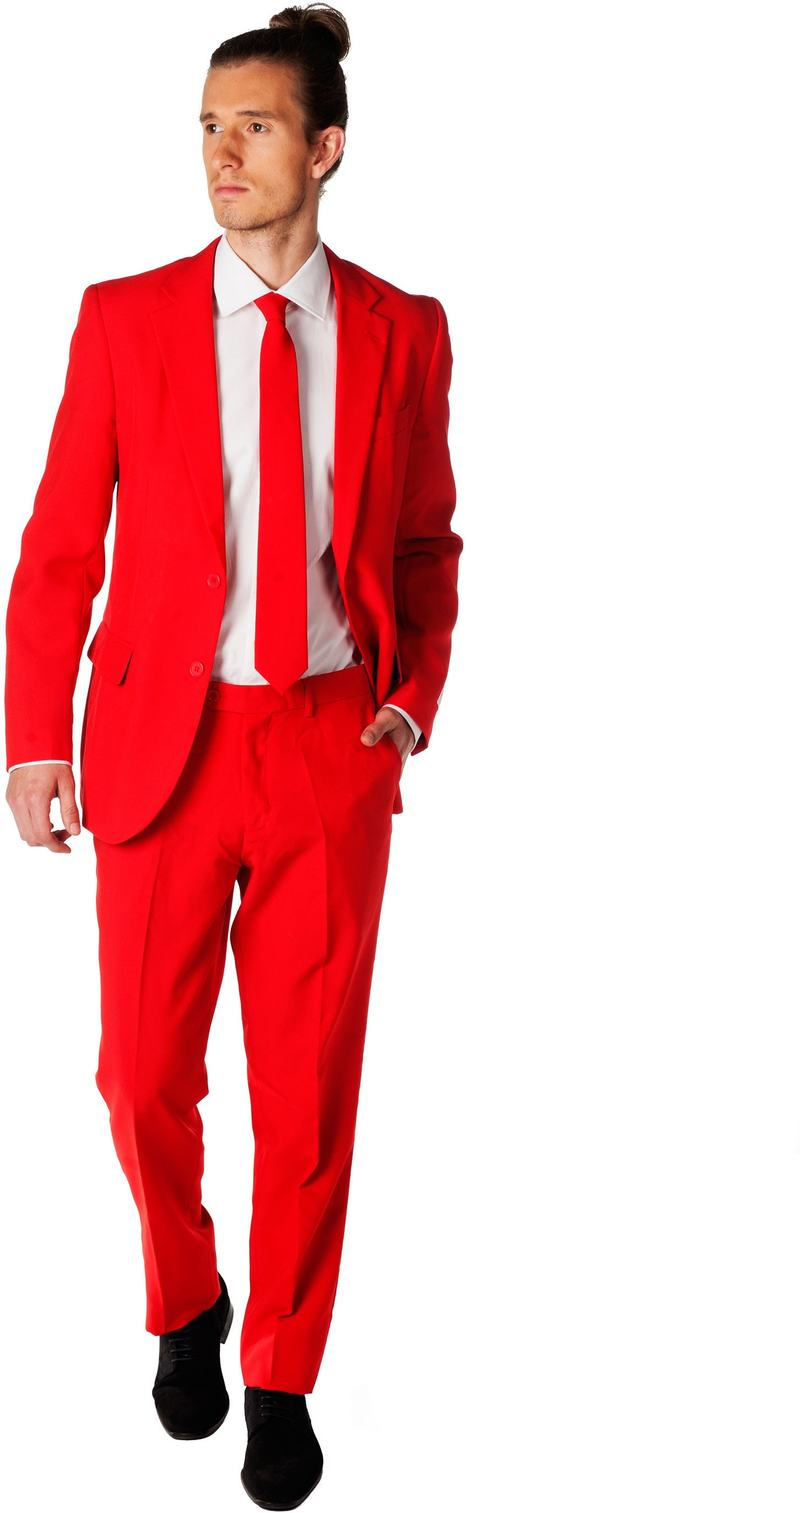 OppoSuits Red Devil Suit photo 0